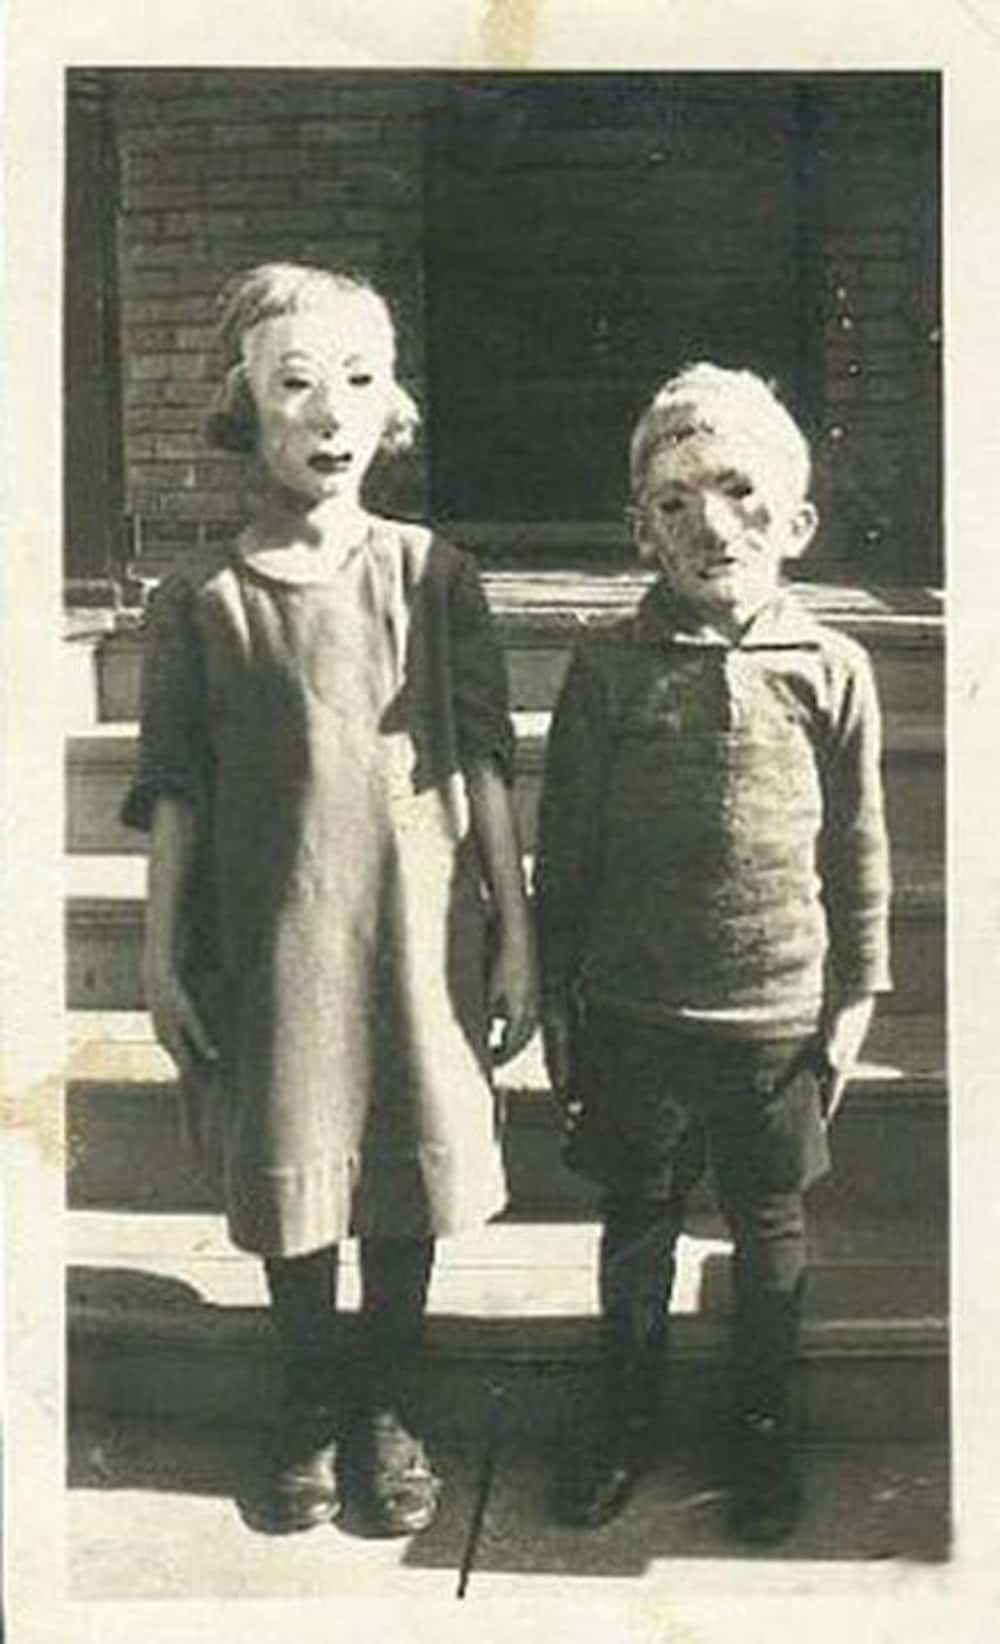 Terrifying Vintage Halloween Costumes | Creepy Old Halloween Costumes